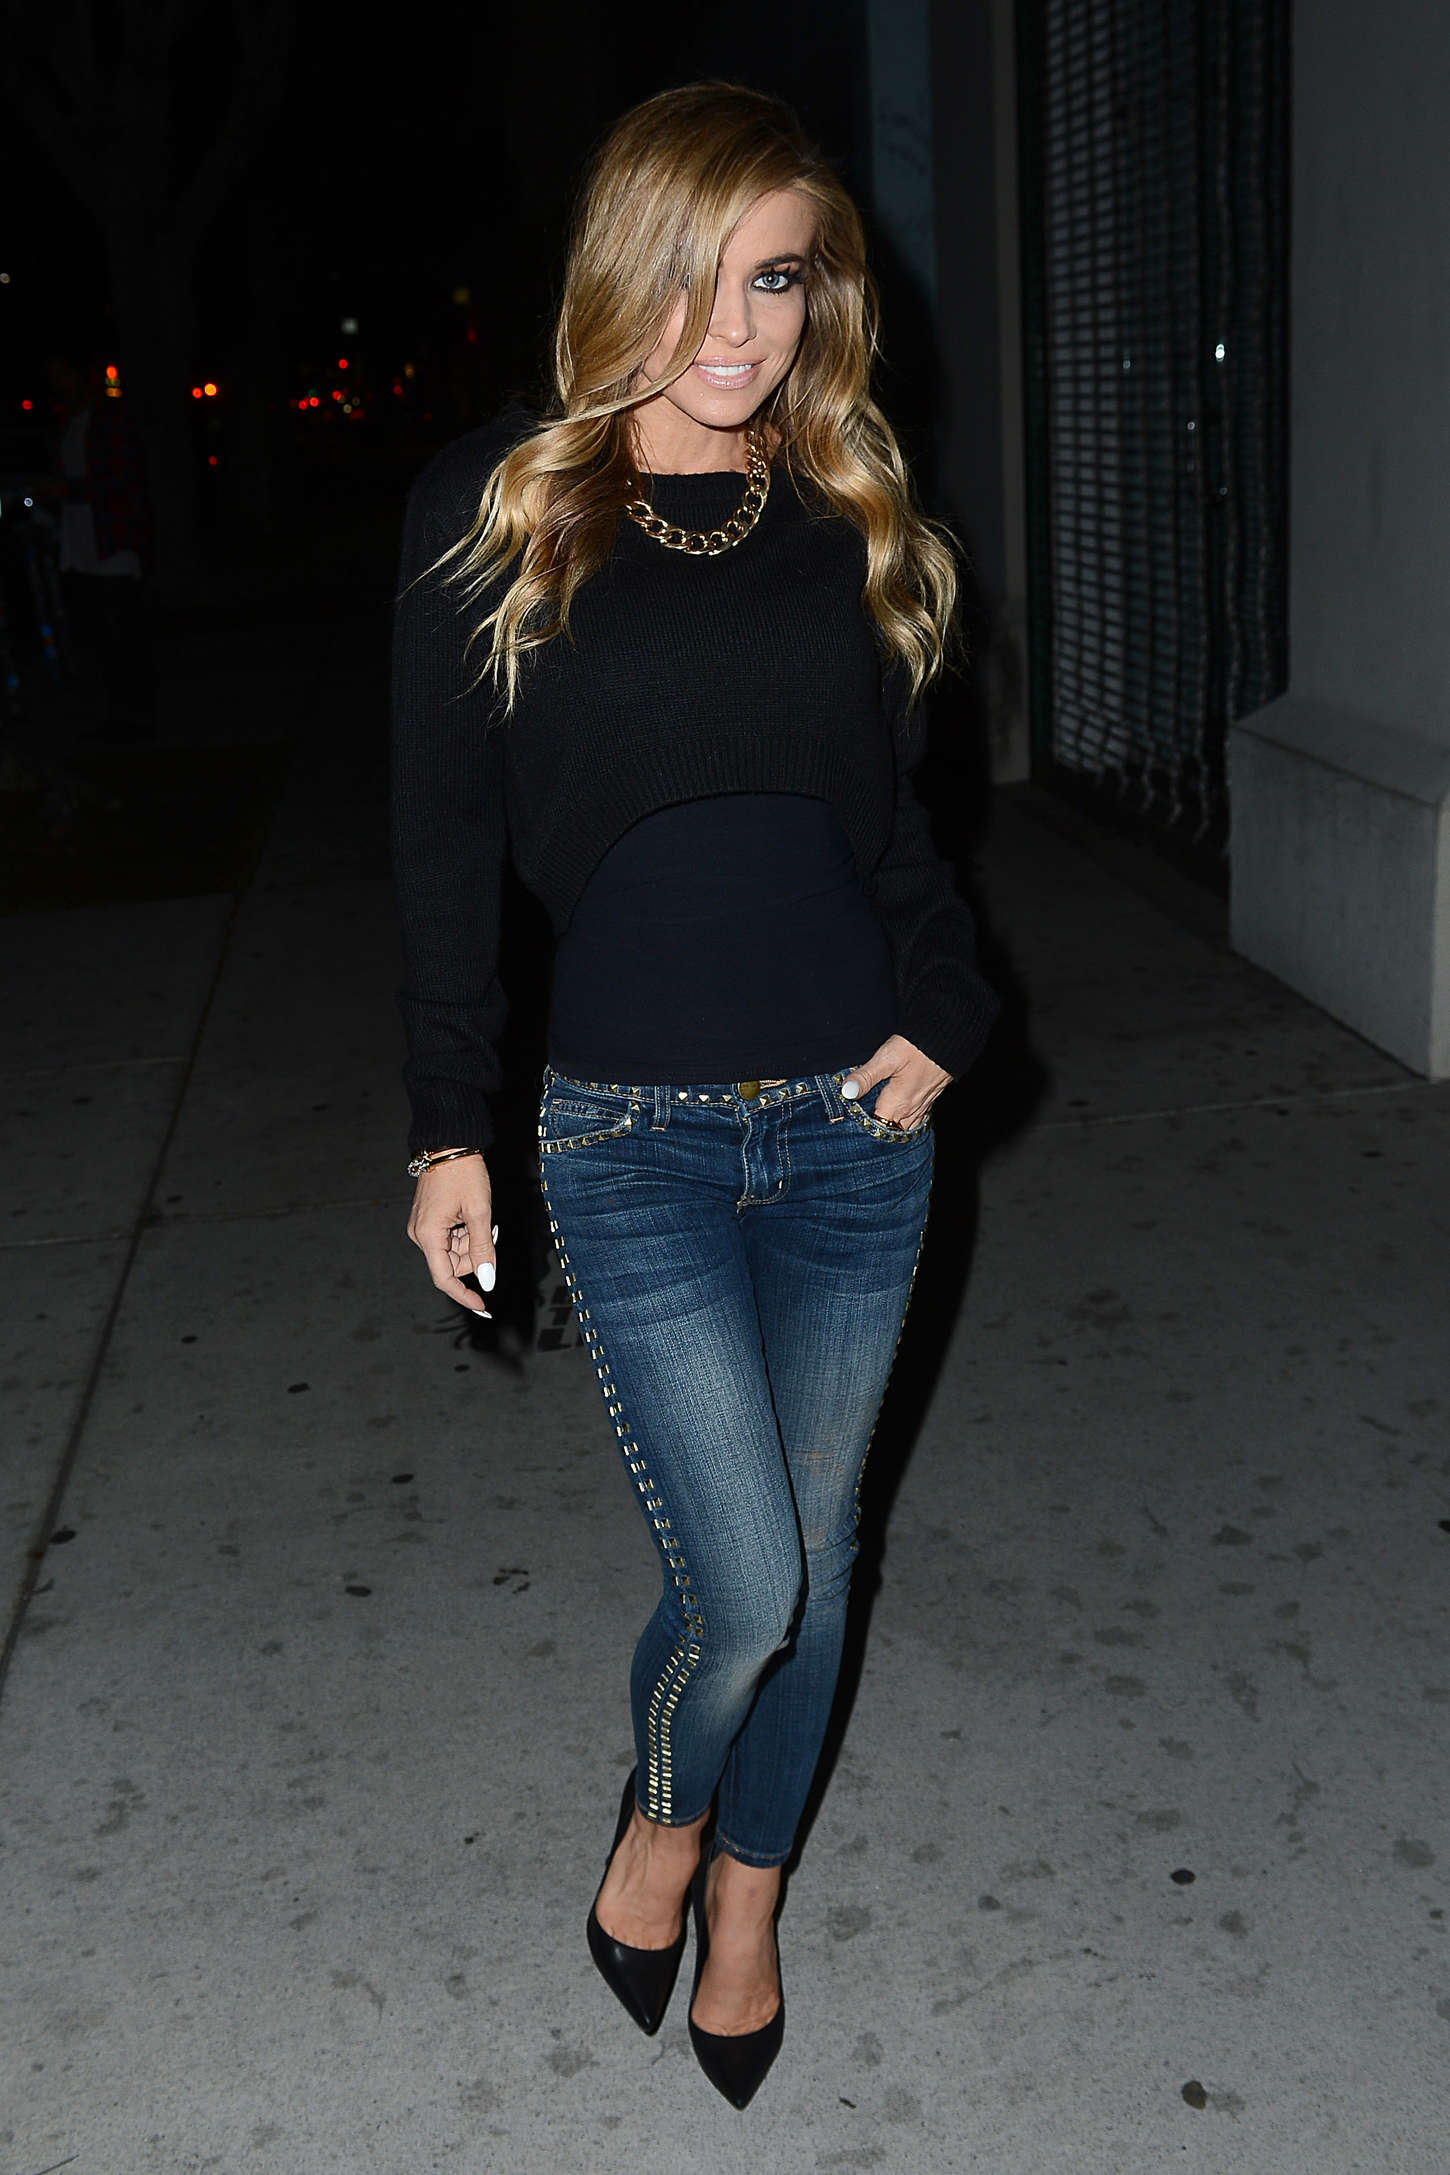 Carmen Electra Booty in Jeans at LAX -12   GotCeleb